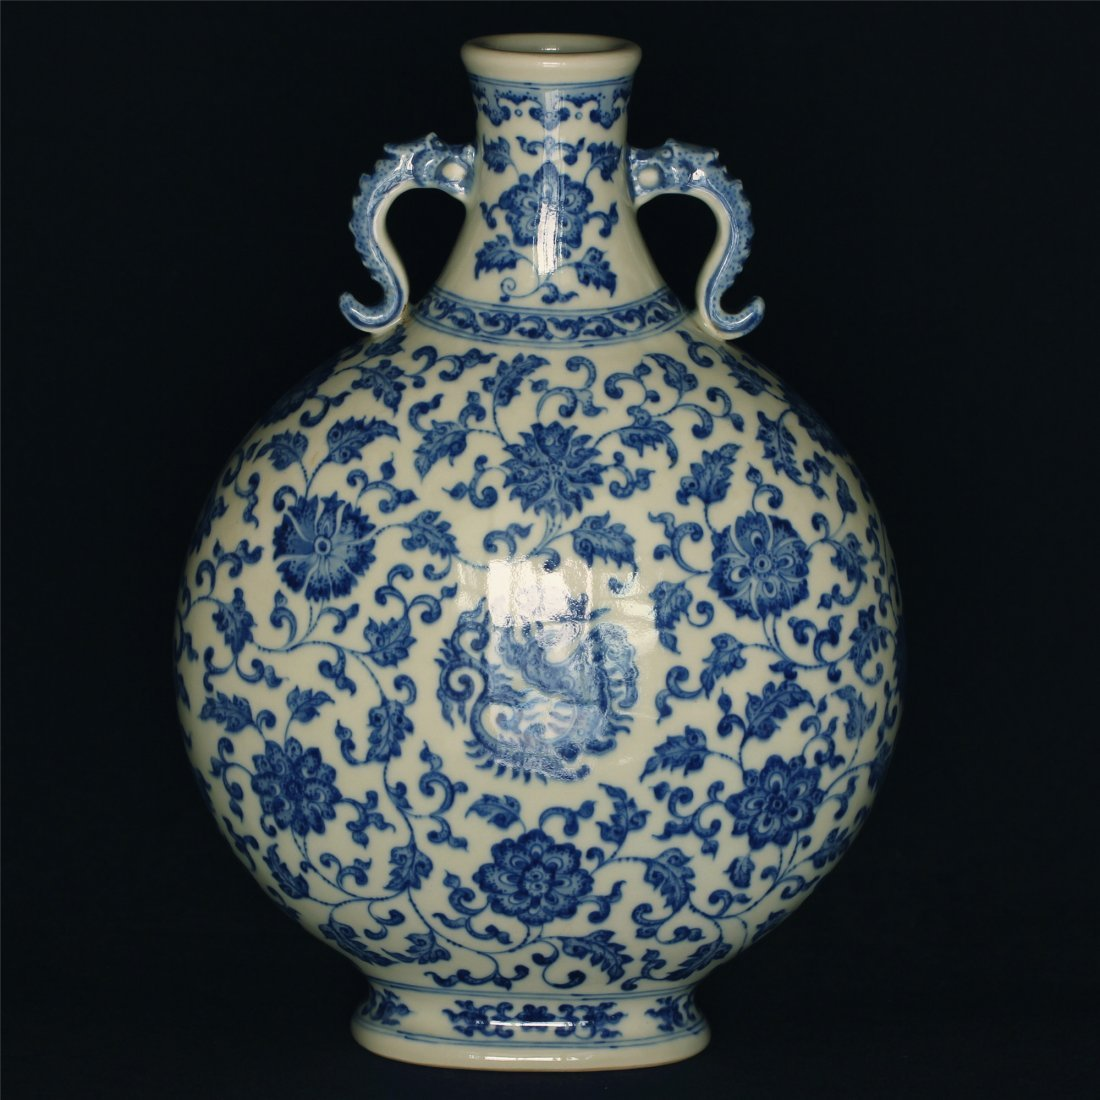 Blue and white porcelain vase of Qing Dynasty QianLong